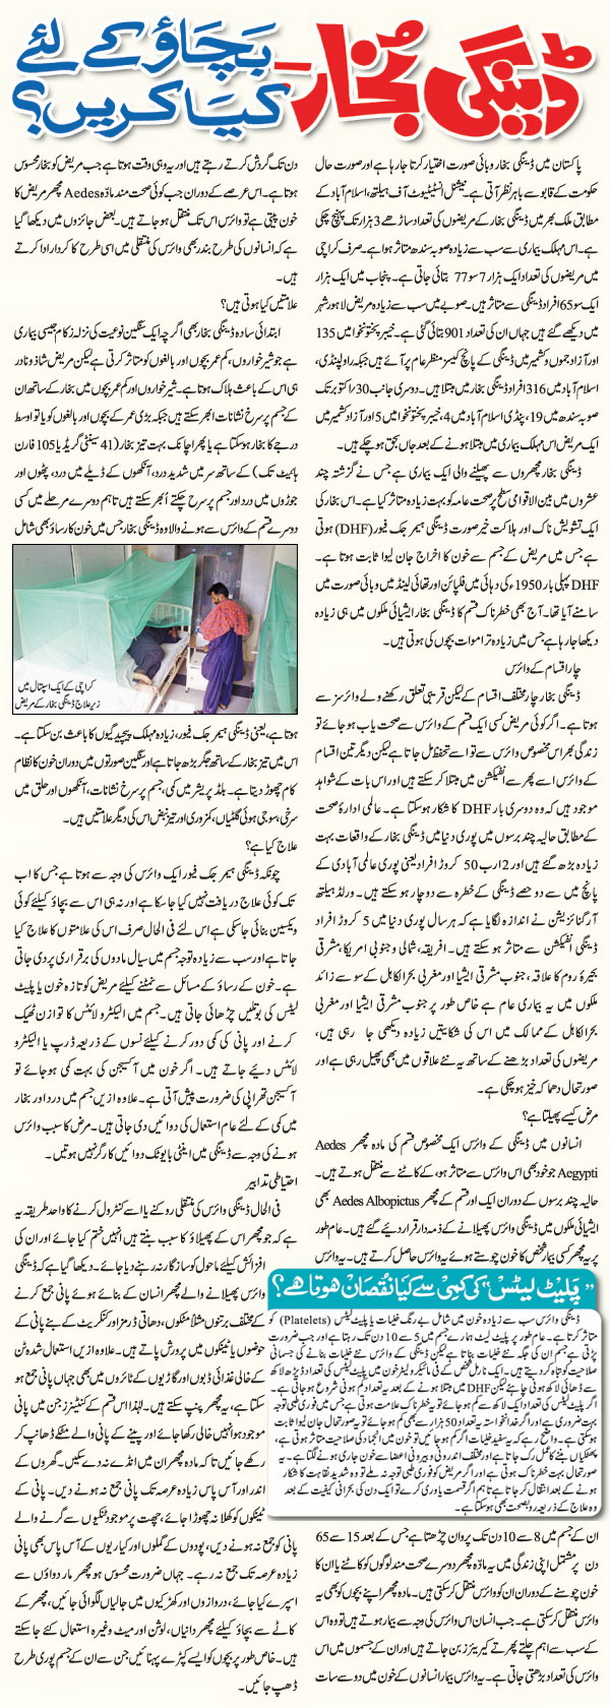 Smoking essay in urdu